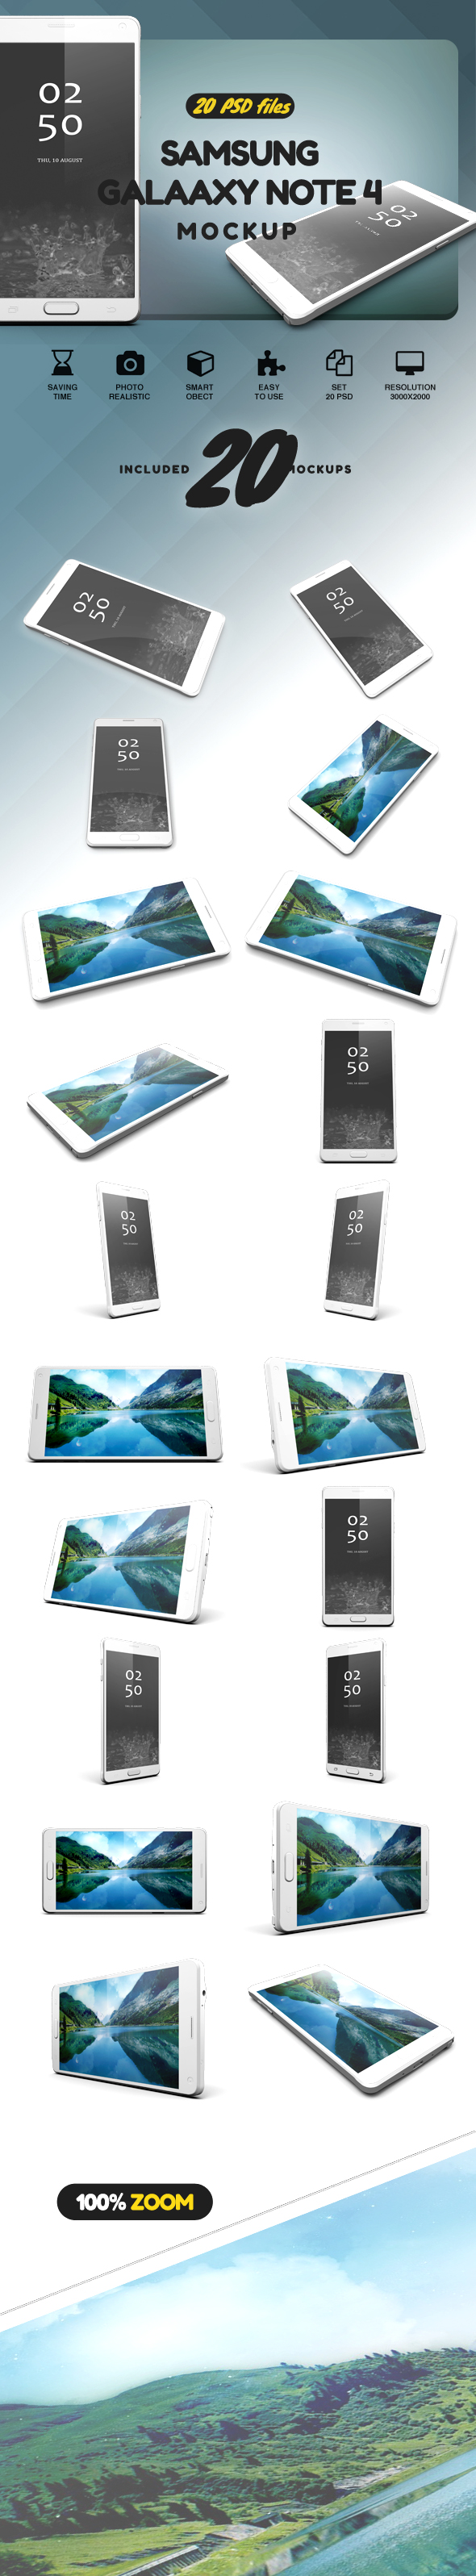 Samsung Galaxy Note 4 Mock-up example image 2